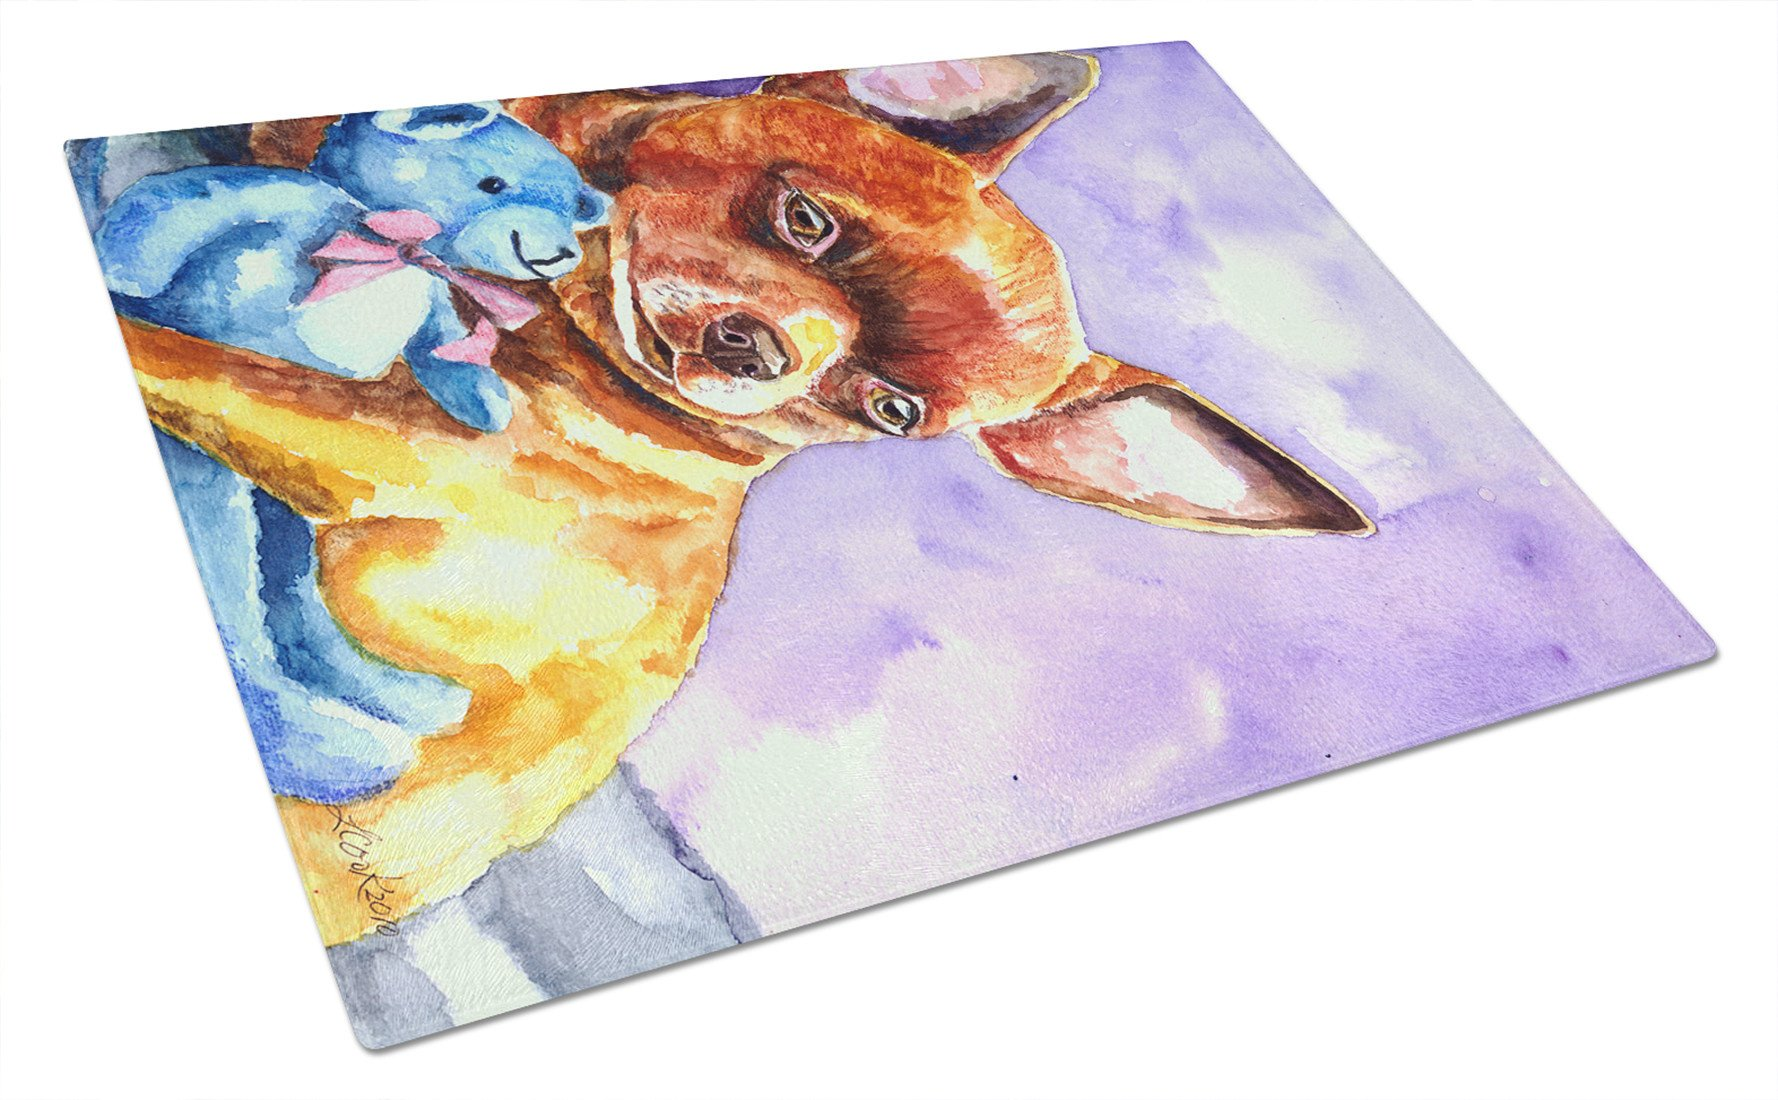 Chihuahua with Teddy Bear Glass Cutting Board Large 7340LCB by Caroline's Treasures